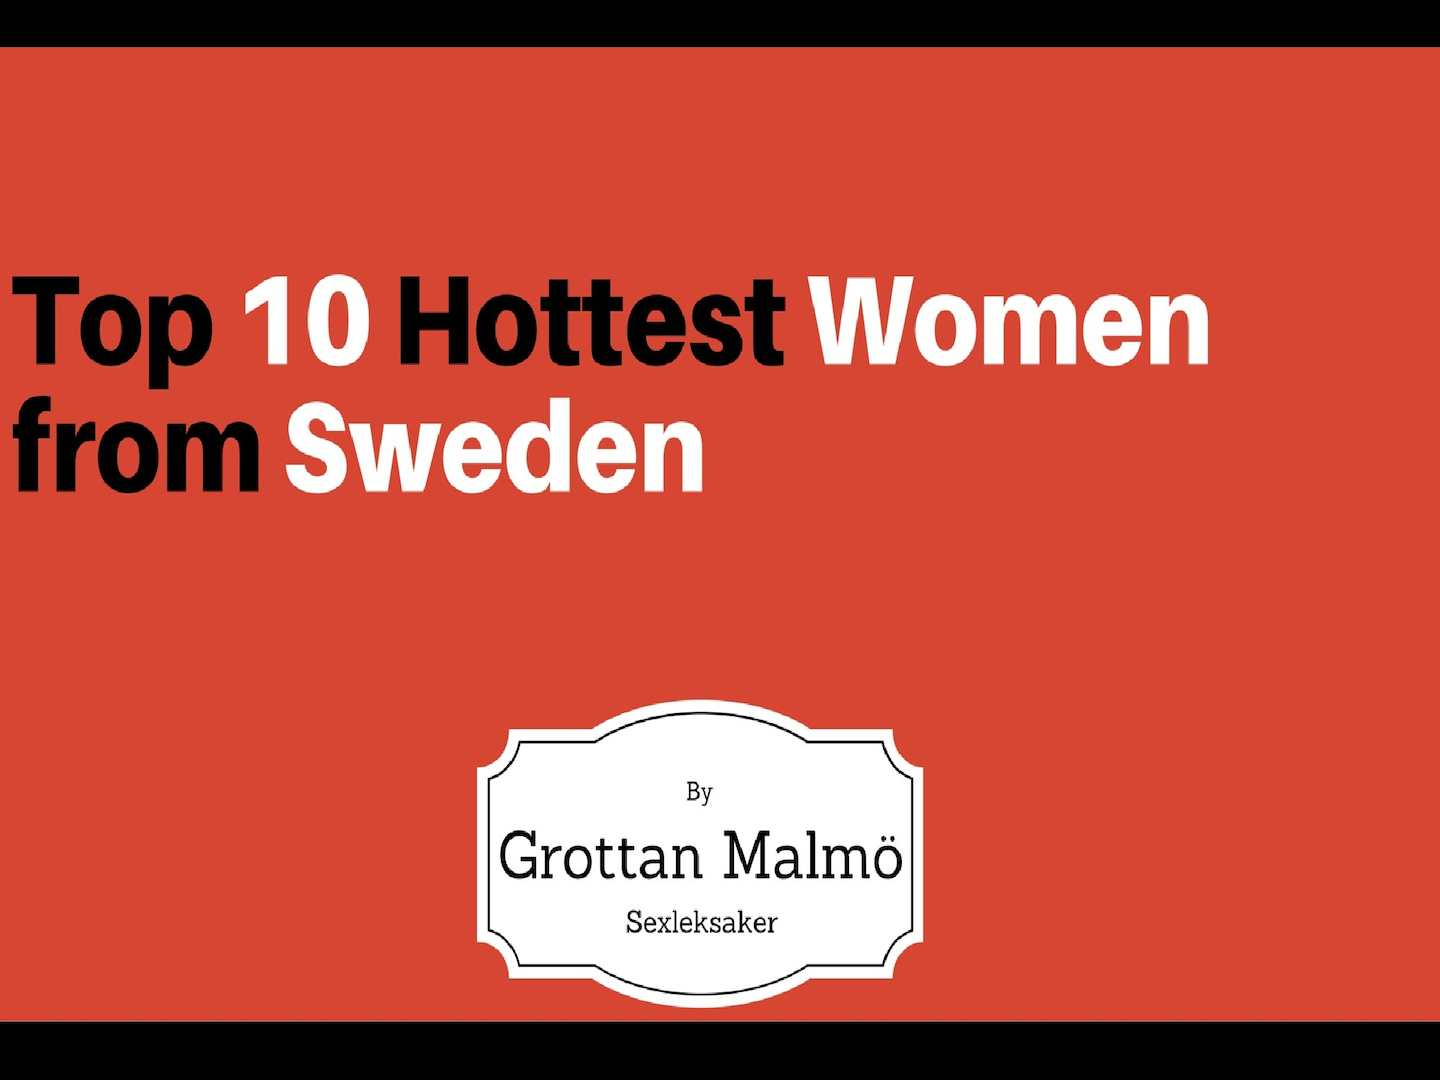 Top 10 Hottest Women from Sweden